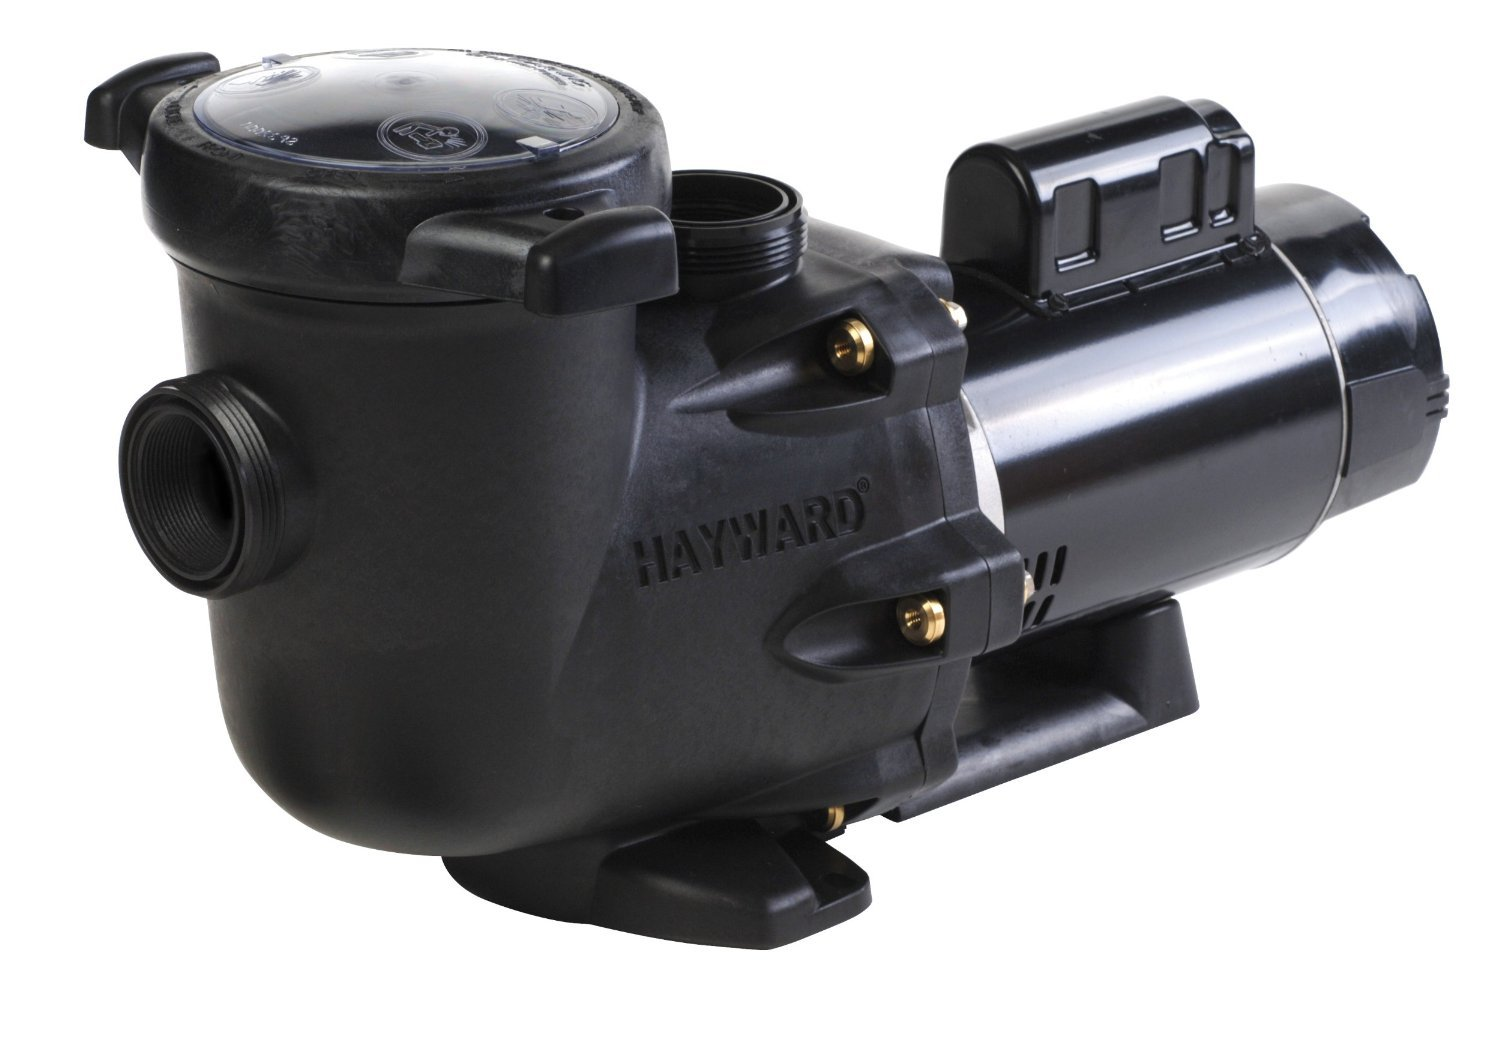 Hayward SPX3220Z1DRV 2-Horsepower 3-Phase Energy Efficient Full Rate Motor Replacement for Hayward Tristar SP3200EE Series Pump